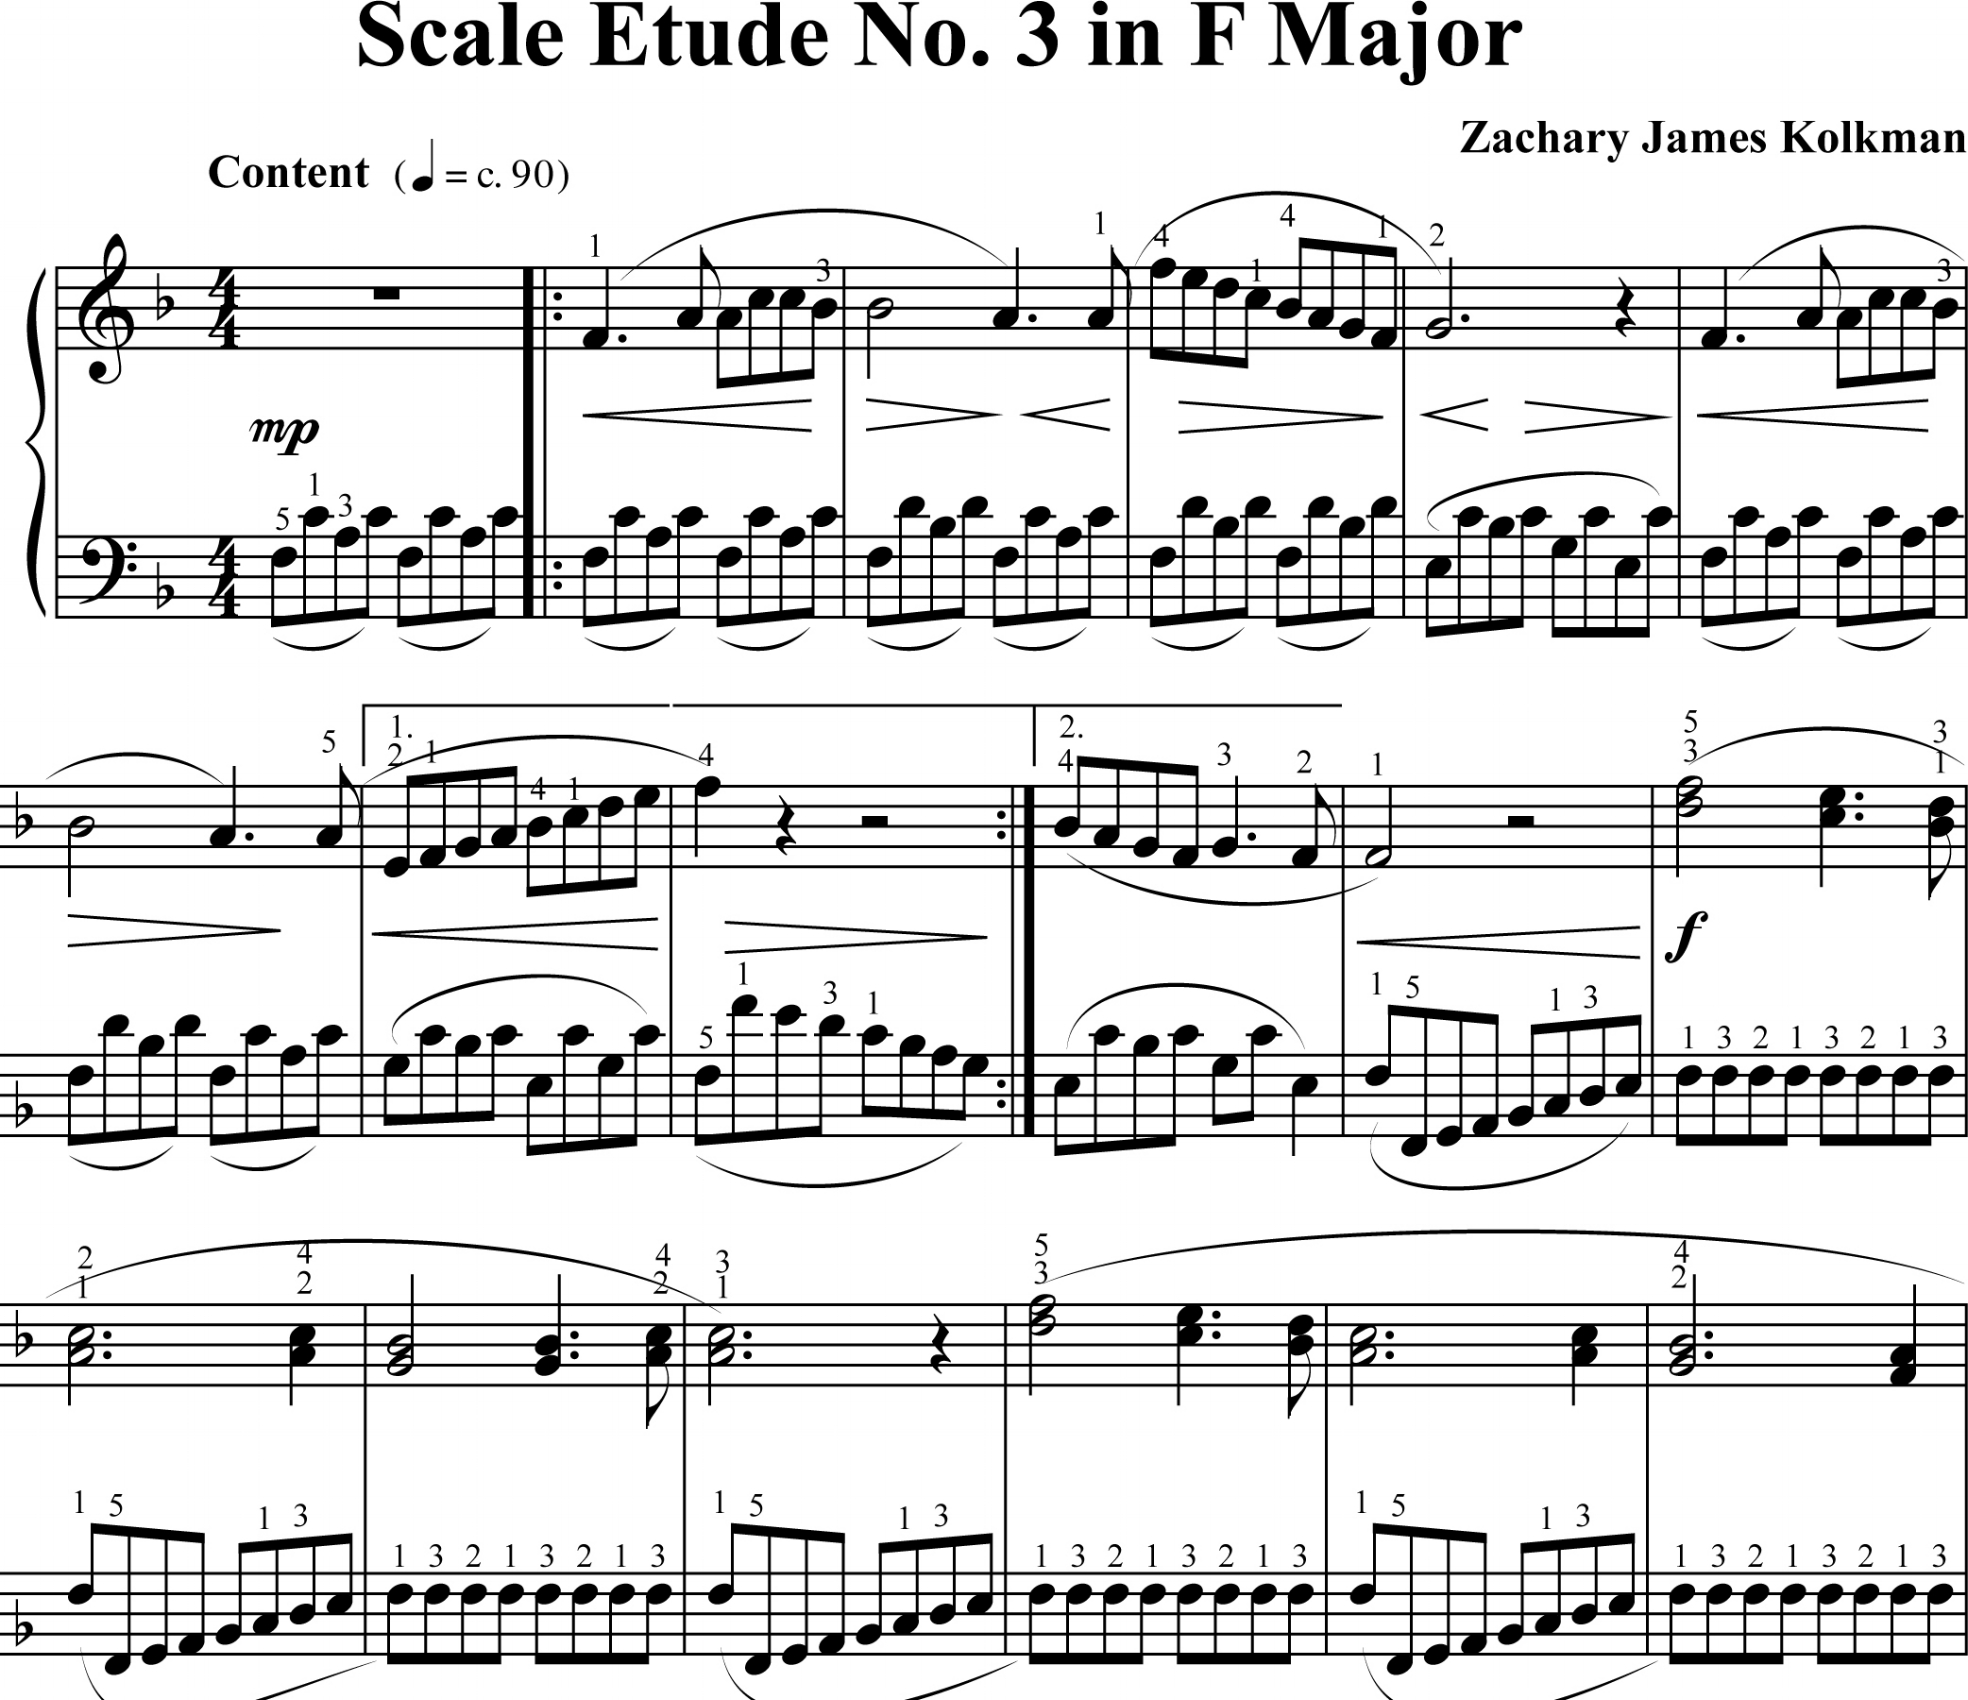 Sheet Music Download:  Scale Etude No. 3 in F Major